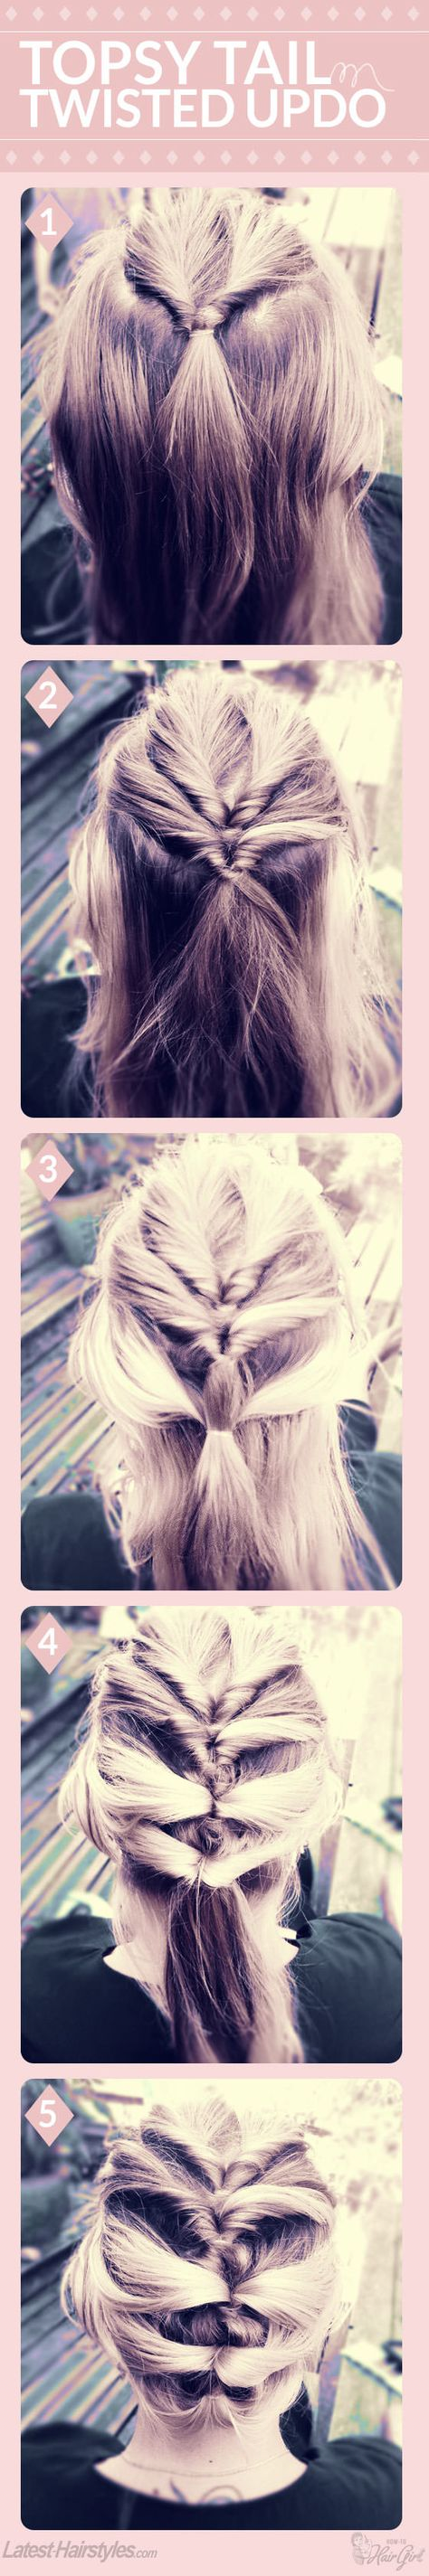 Topsy tail twisted up-do